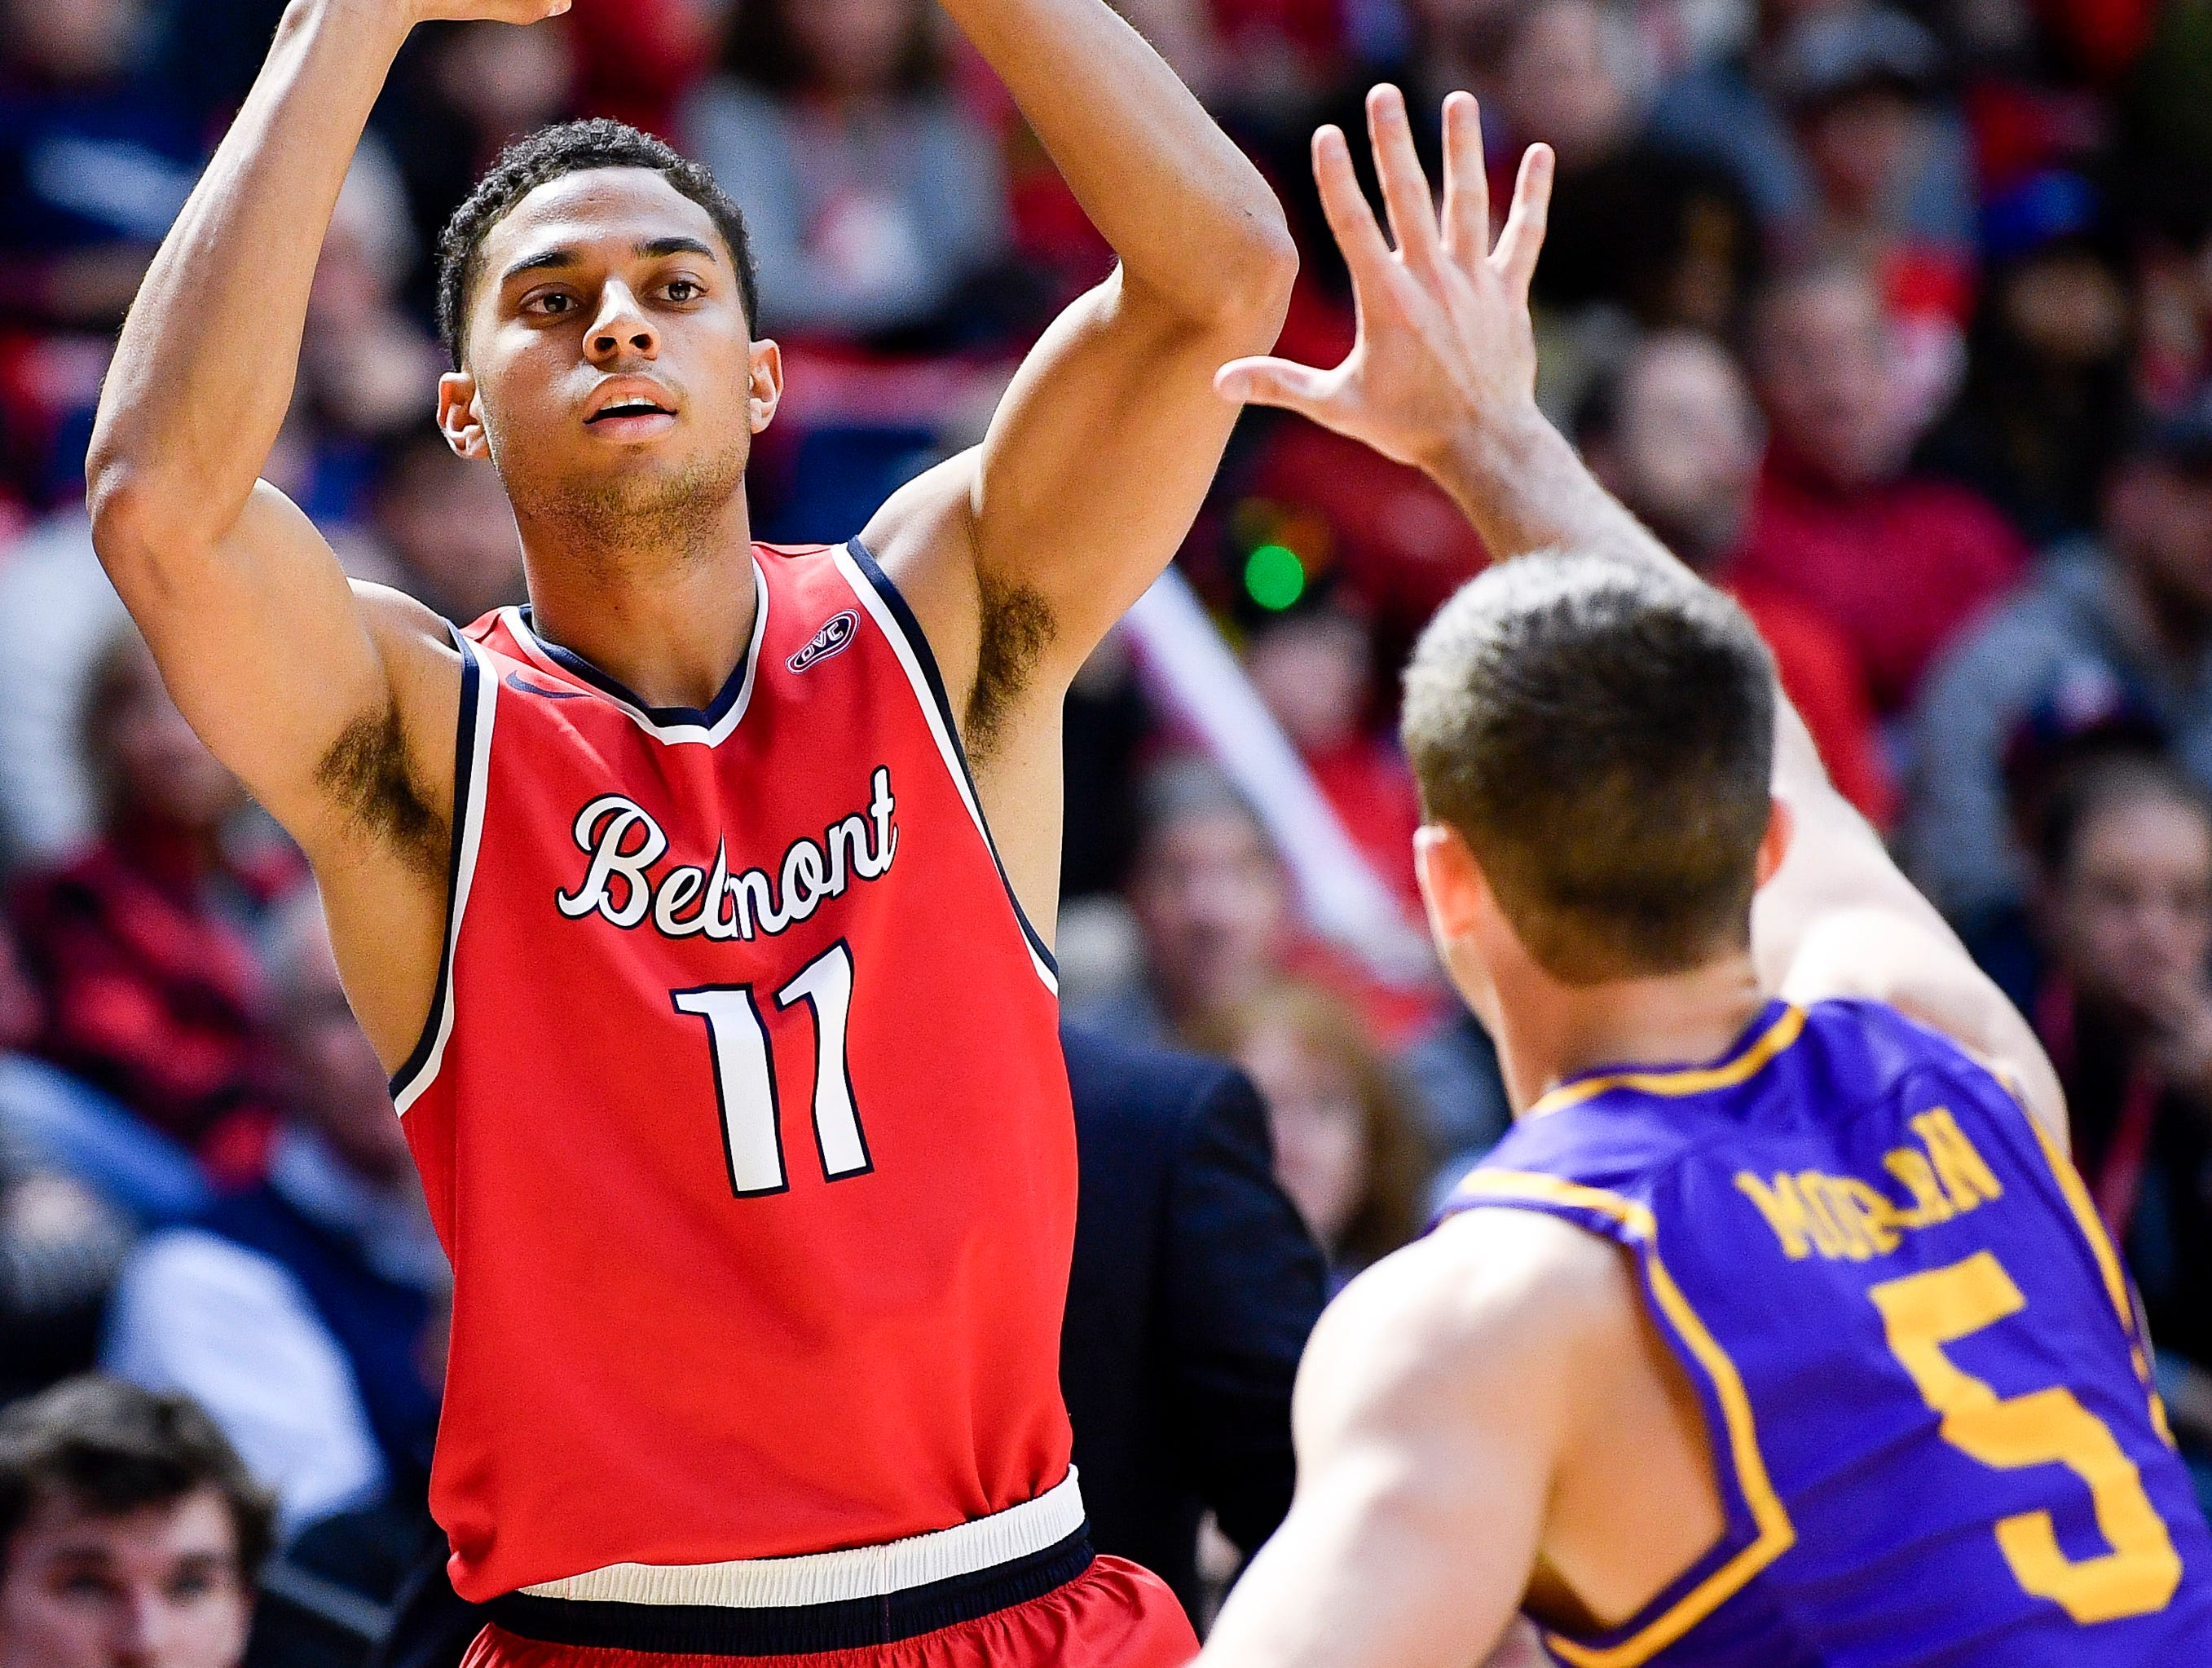 Belmont guard Kevin McClain (11) looks to pass past Lipscomb guard Nathan Moran (5) during the first half at the Curb Event Center in Nashville, Tenn., Tuesday, Dec. 4, 2018.